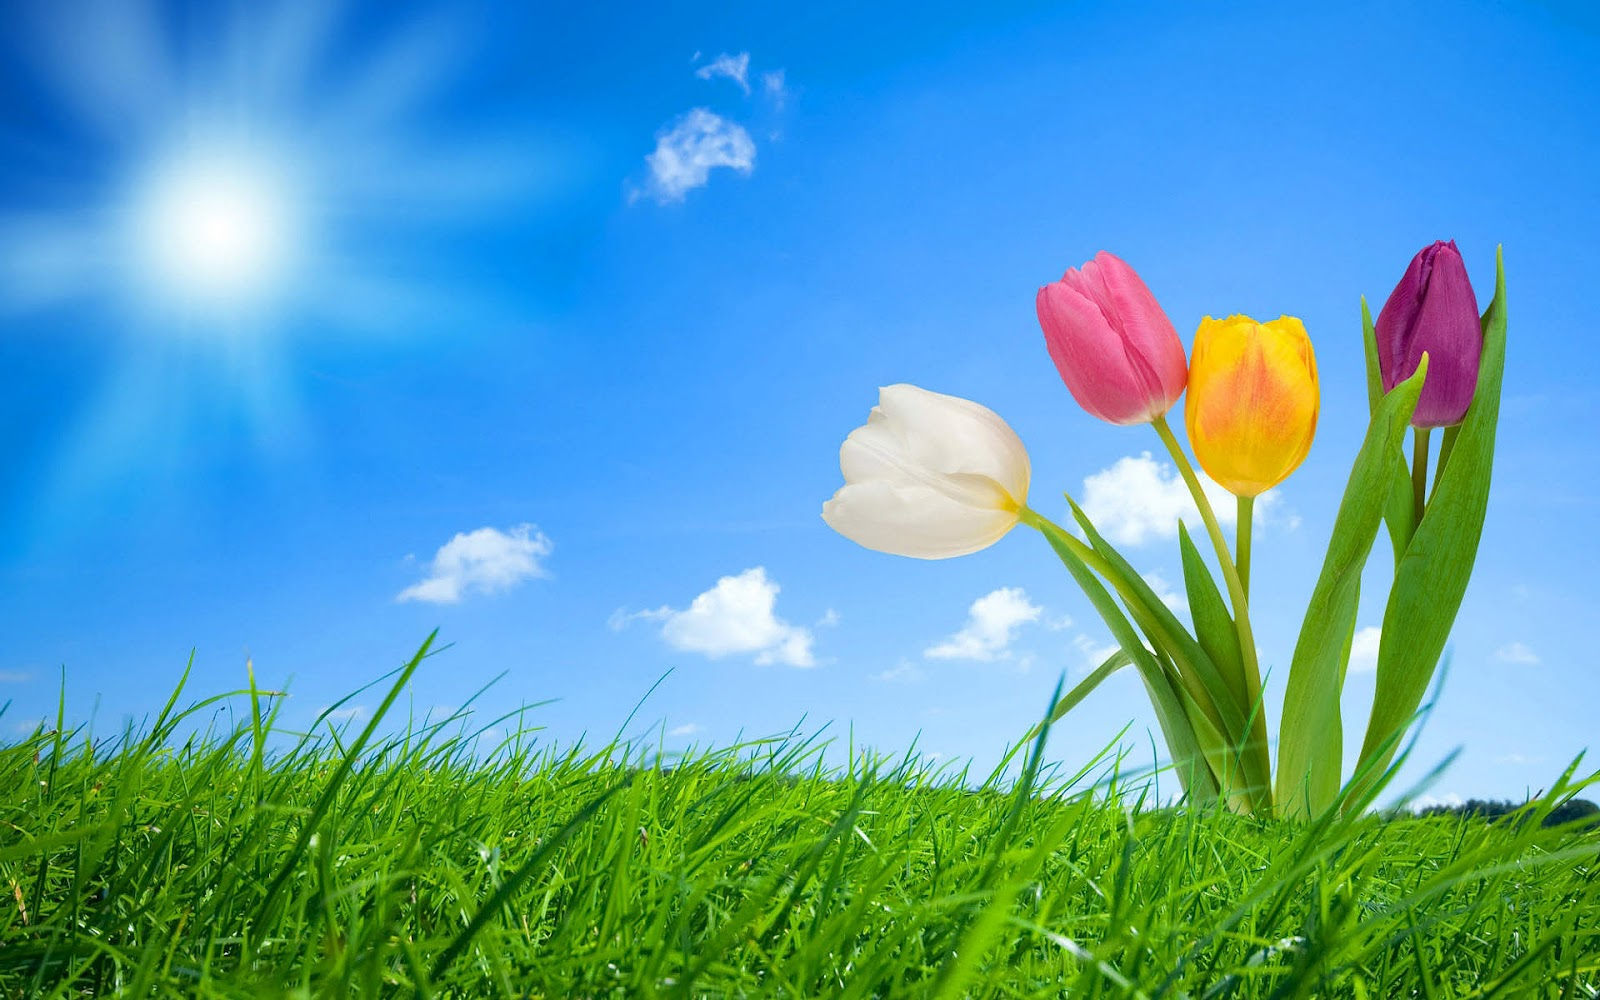 Lente wallpapers hd wallpapers for Wallpapers animados hd